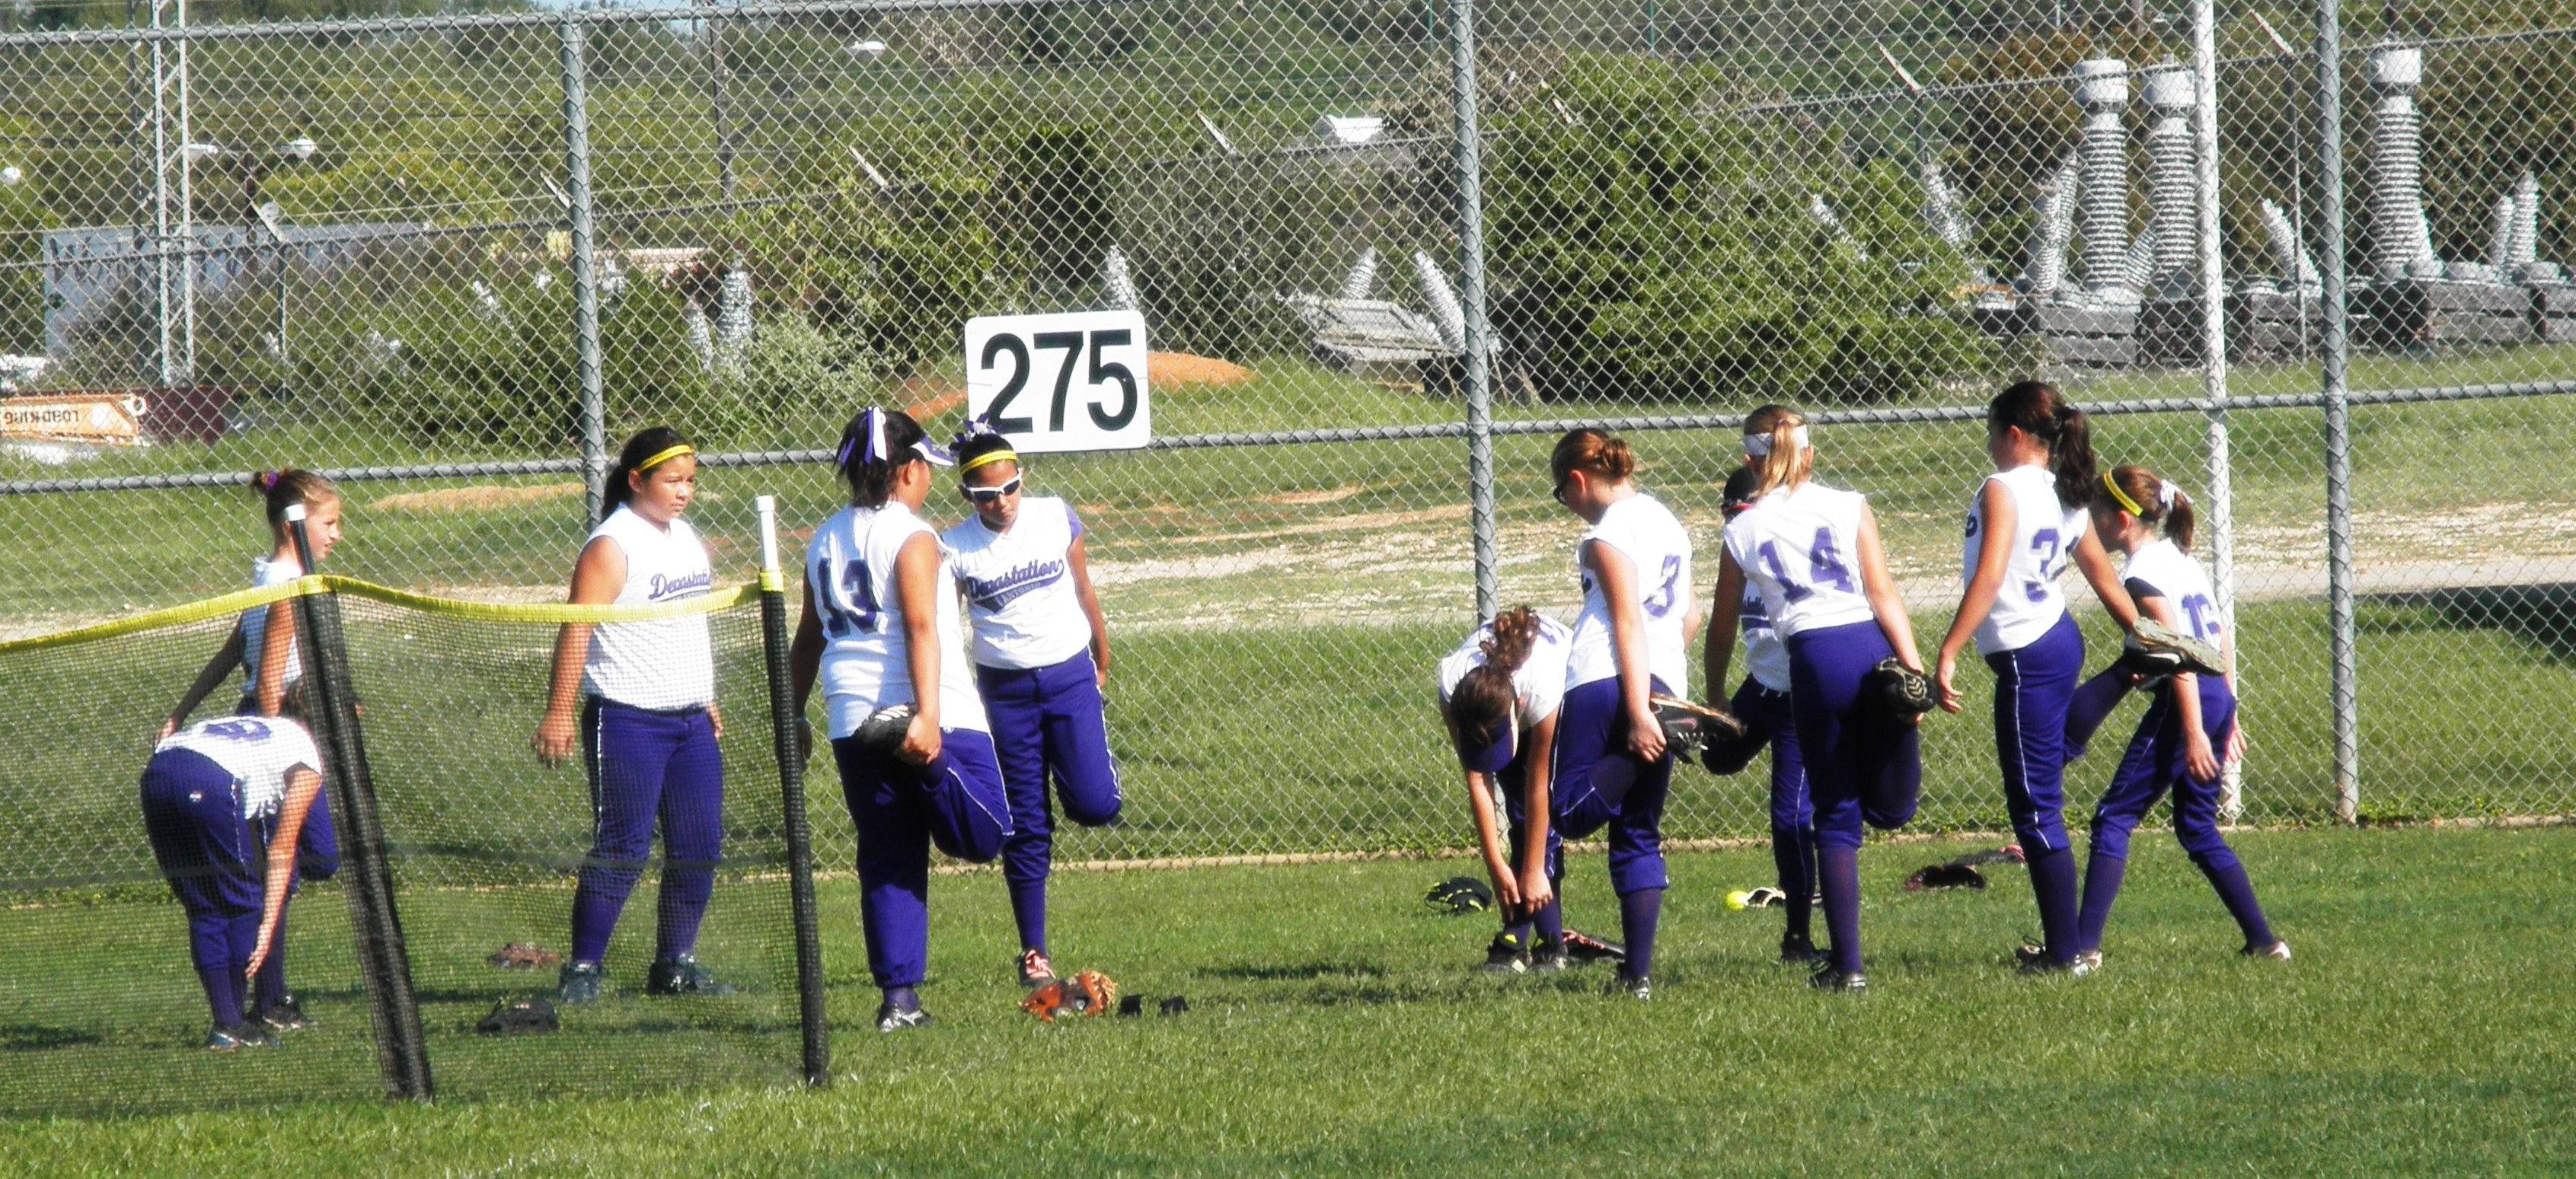 Girls Fastpitch Leagues